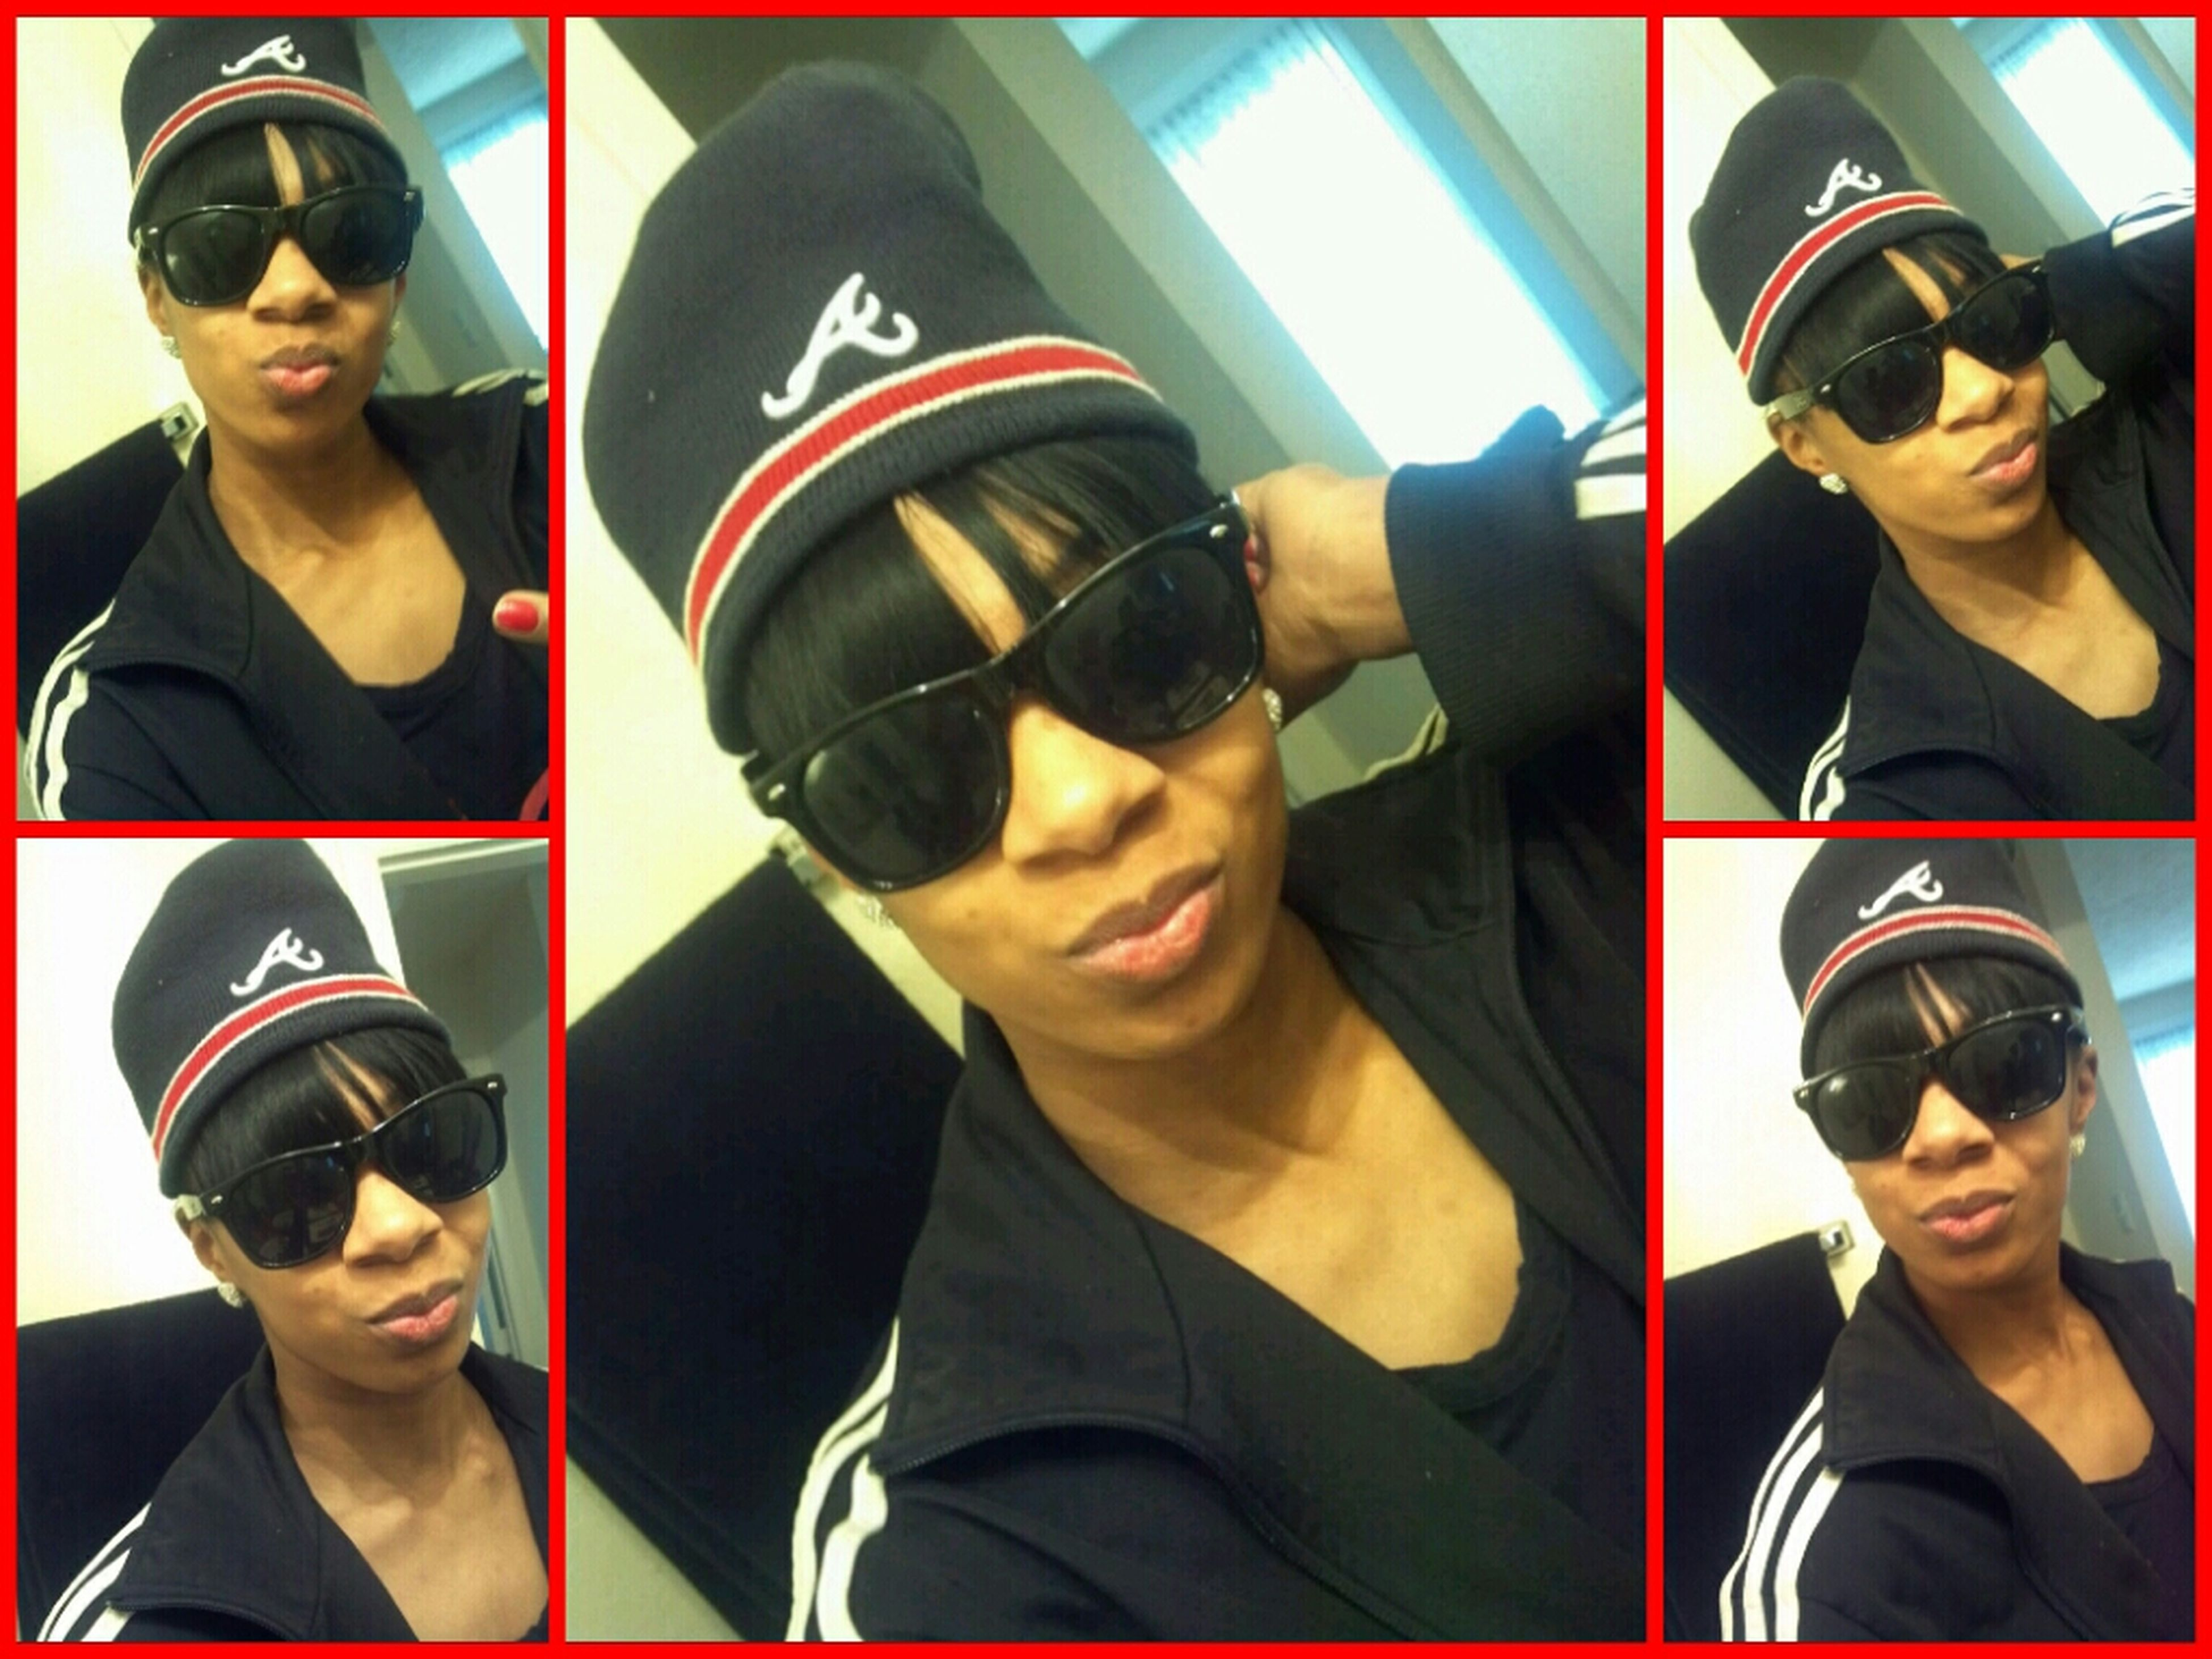 All My Pics #ME NOW! Lol #Bored!